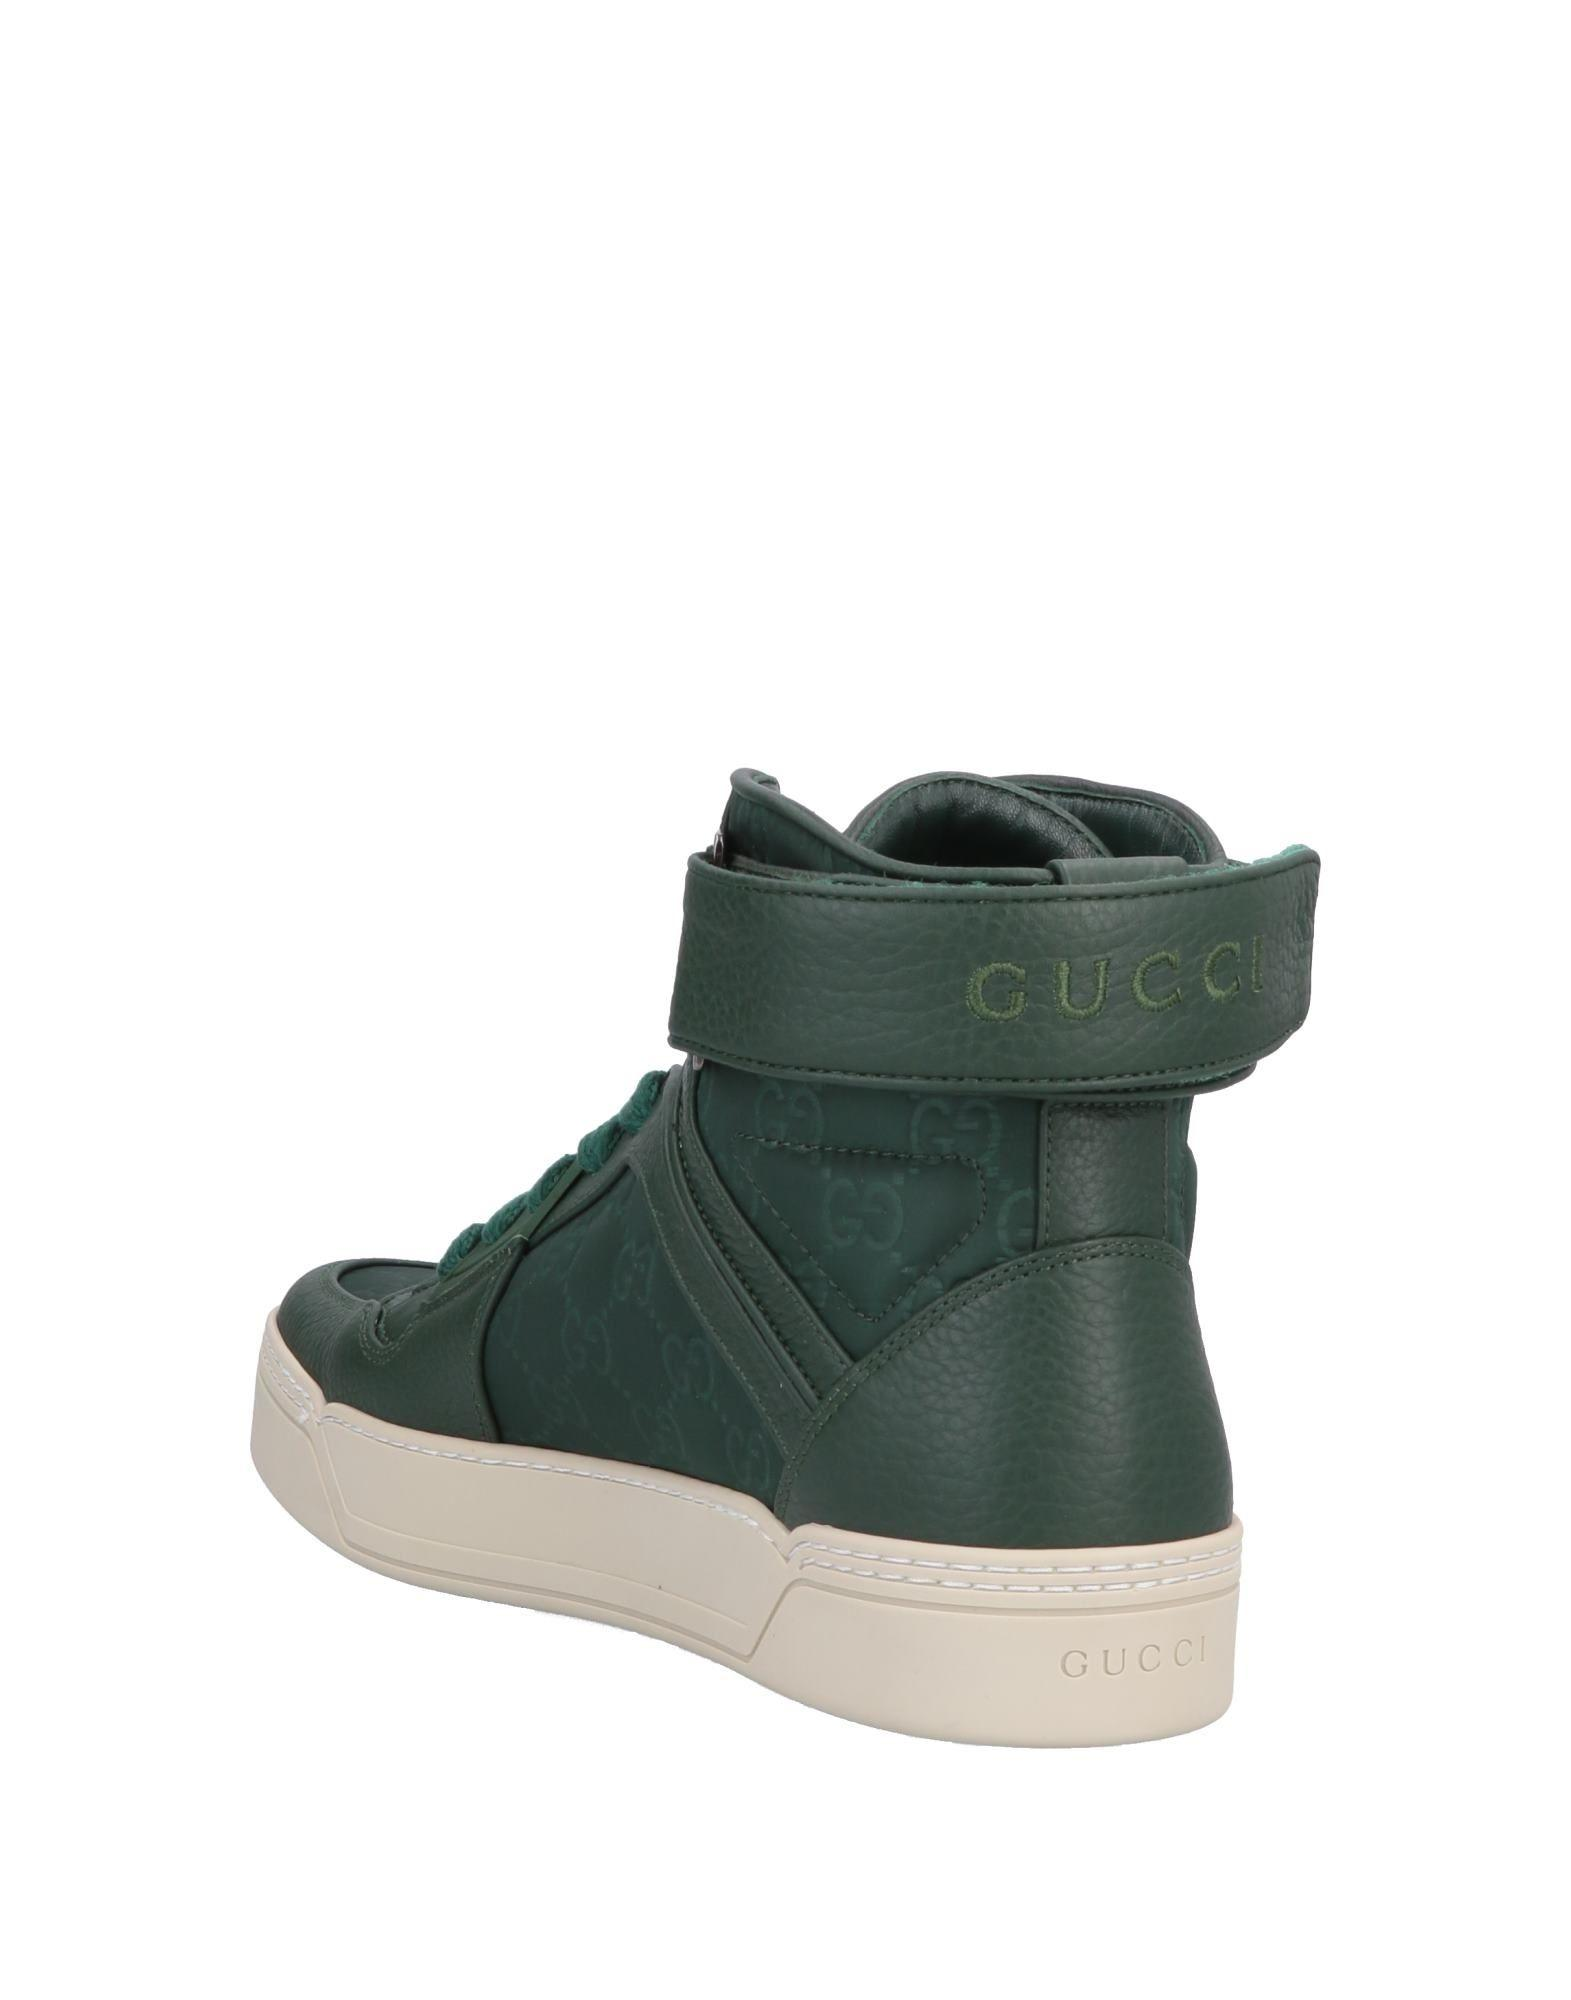 eee800a052d9 Gucci High-tops   Sneakers in Green for Men - Lyst